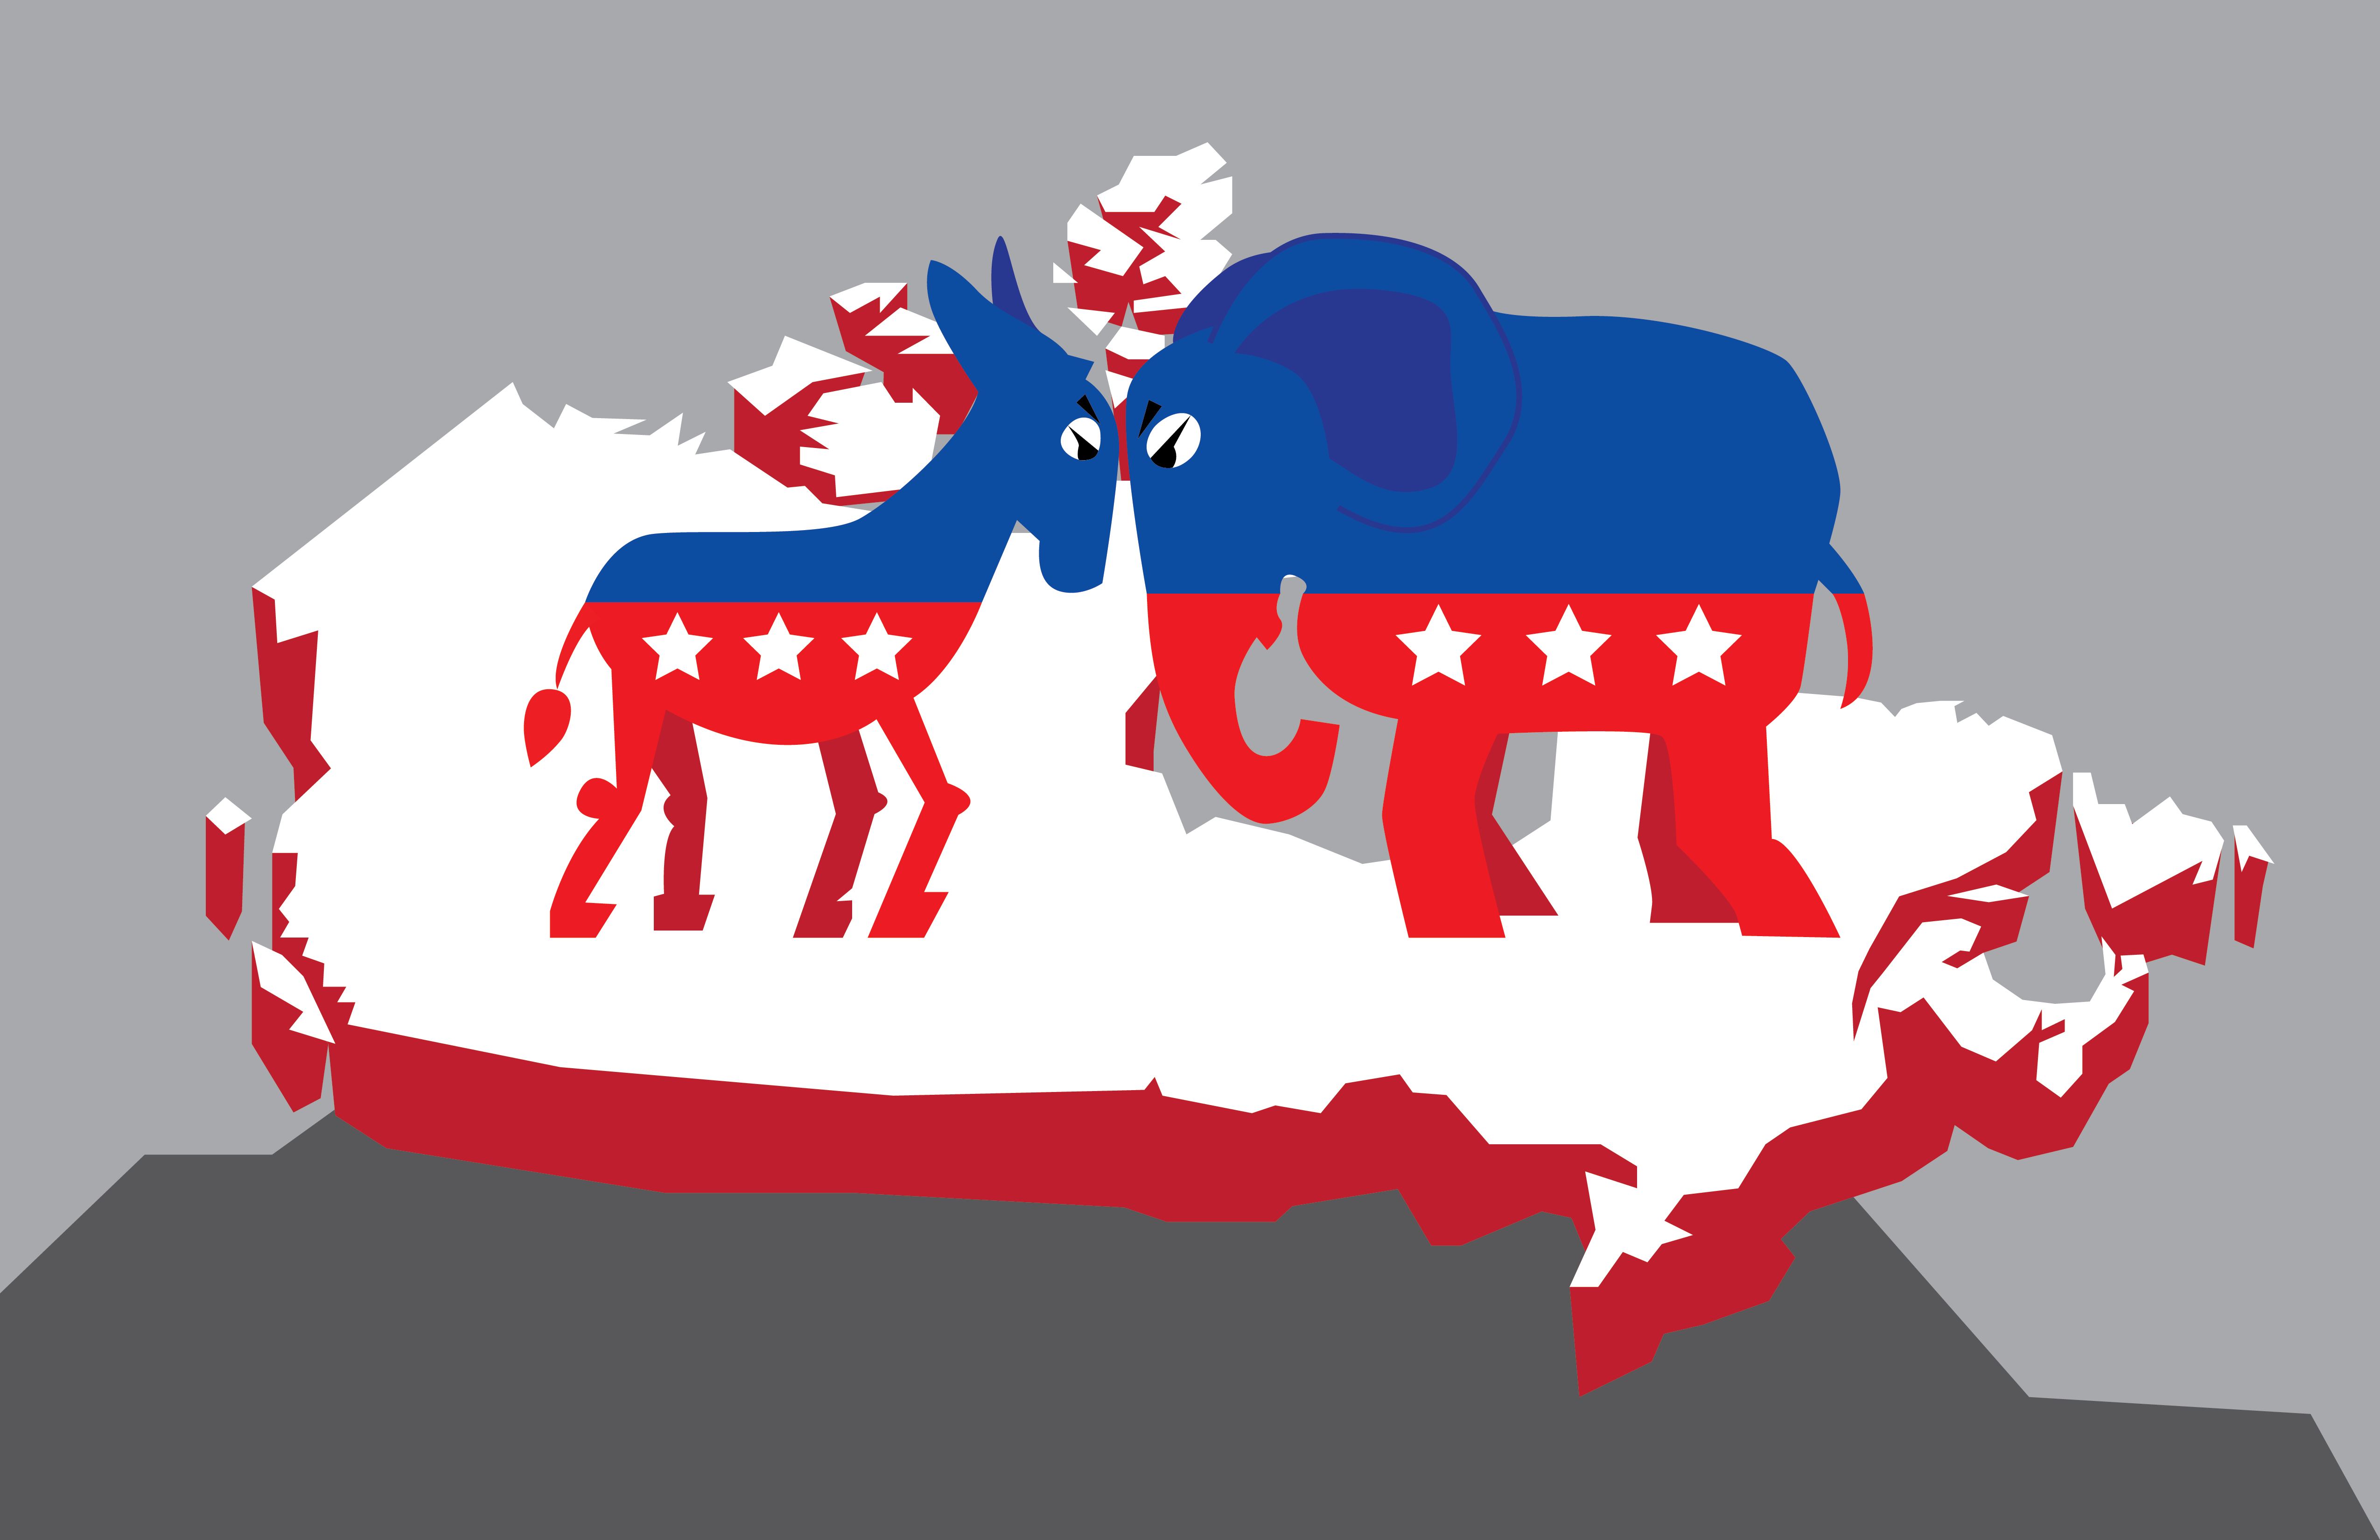 A donkey representing the Republican Party and an elephant representing the Democratic Party are head to head on top of the map of Canada.